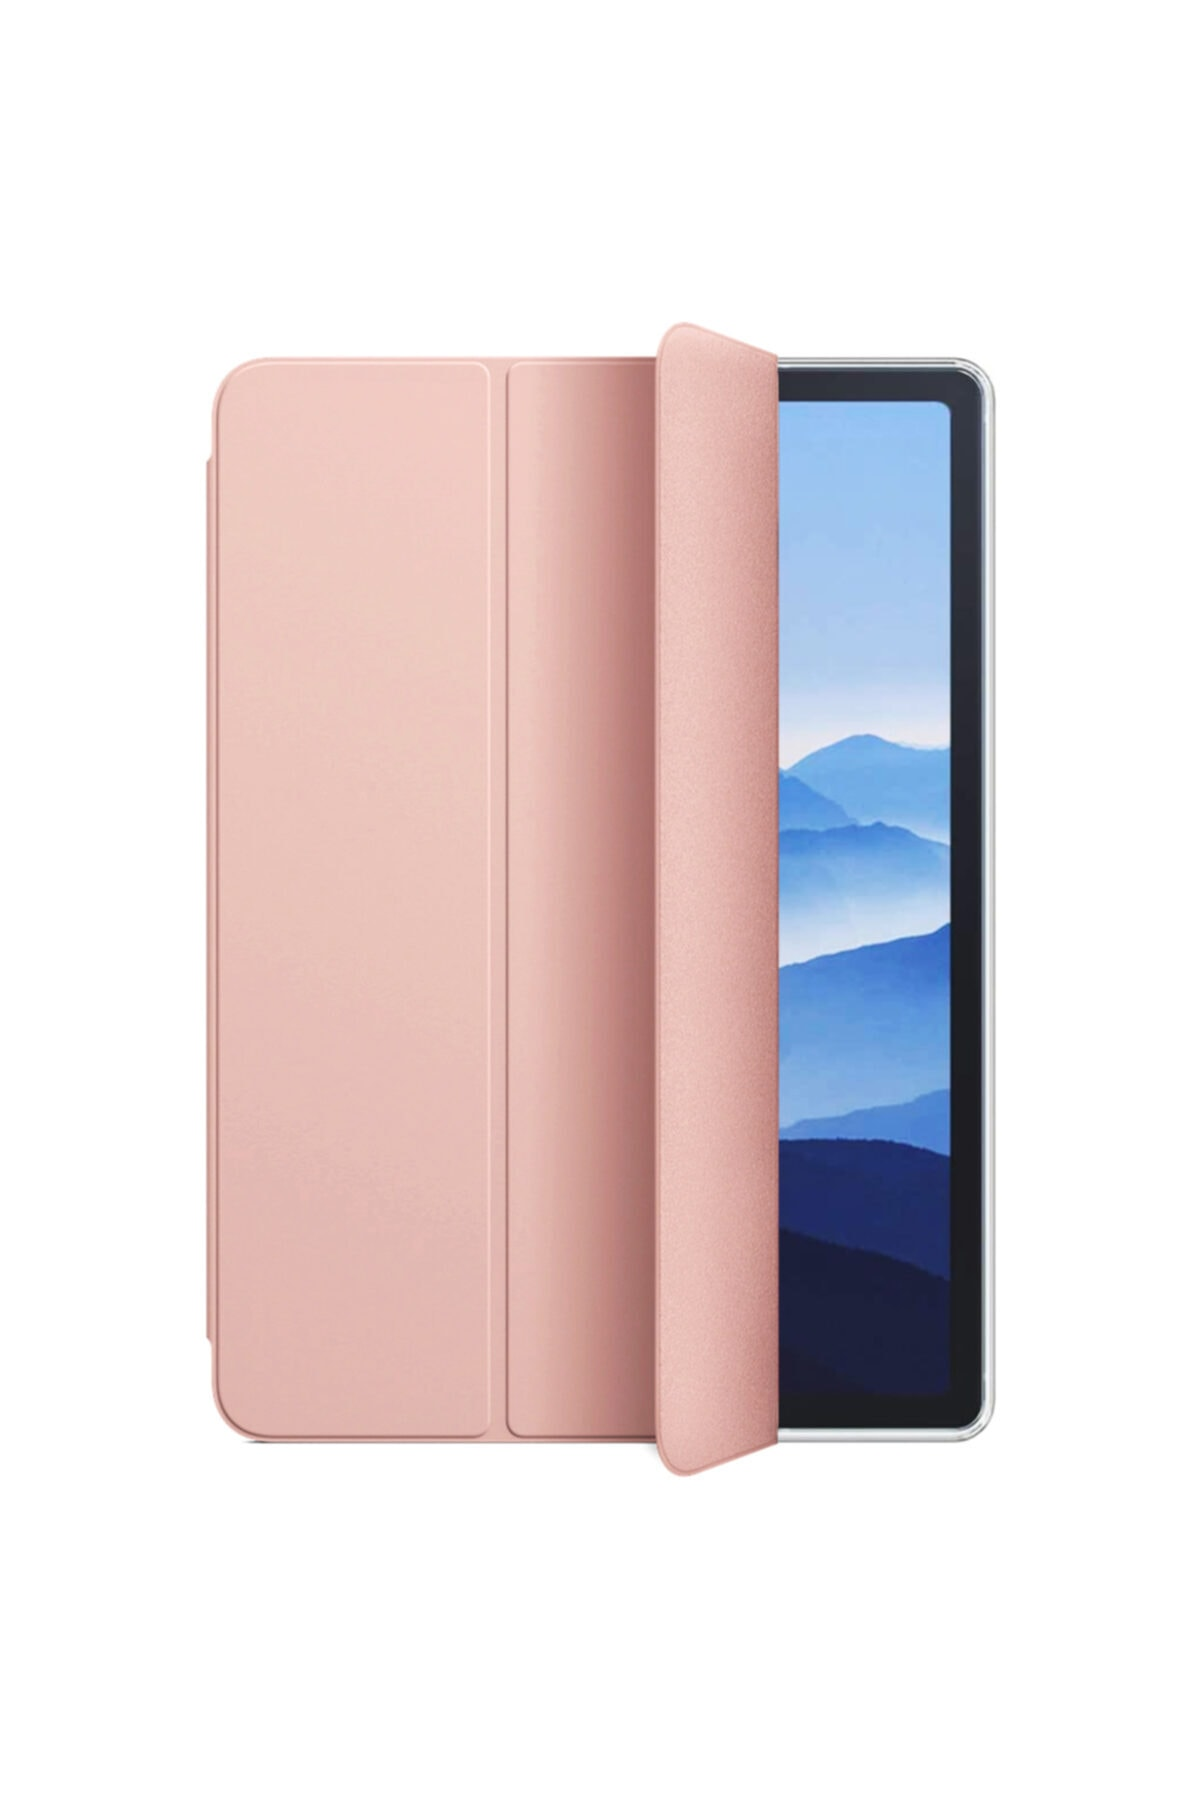 "Microsonic Microsonic Galaxy Tab S6 Lite 10.4"" P610 Kılıf Slim Smart Cover Rose Gold 2"